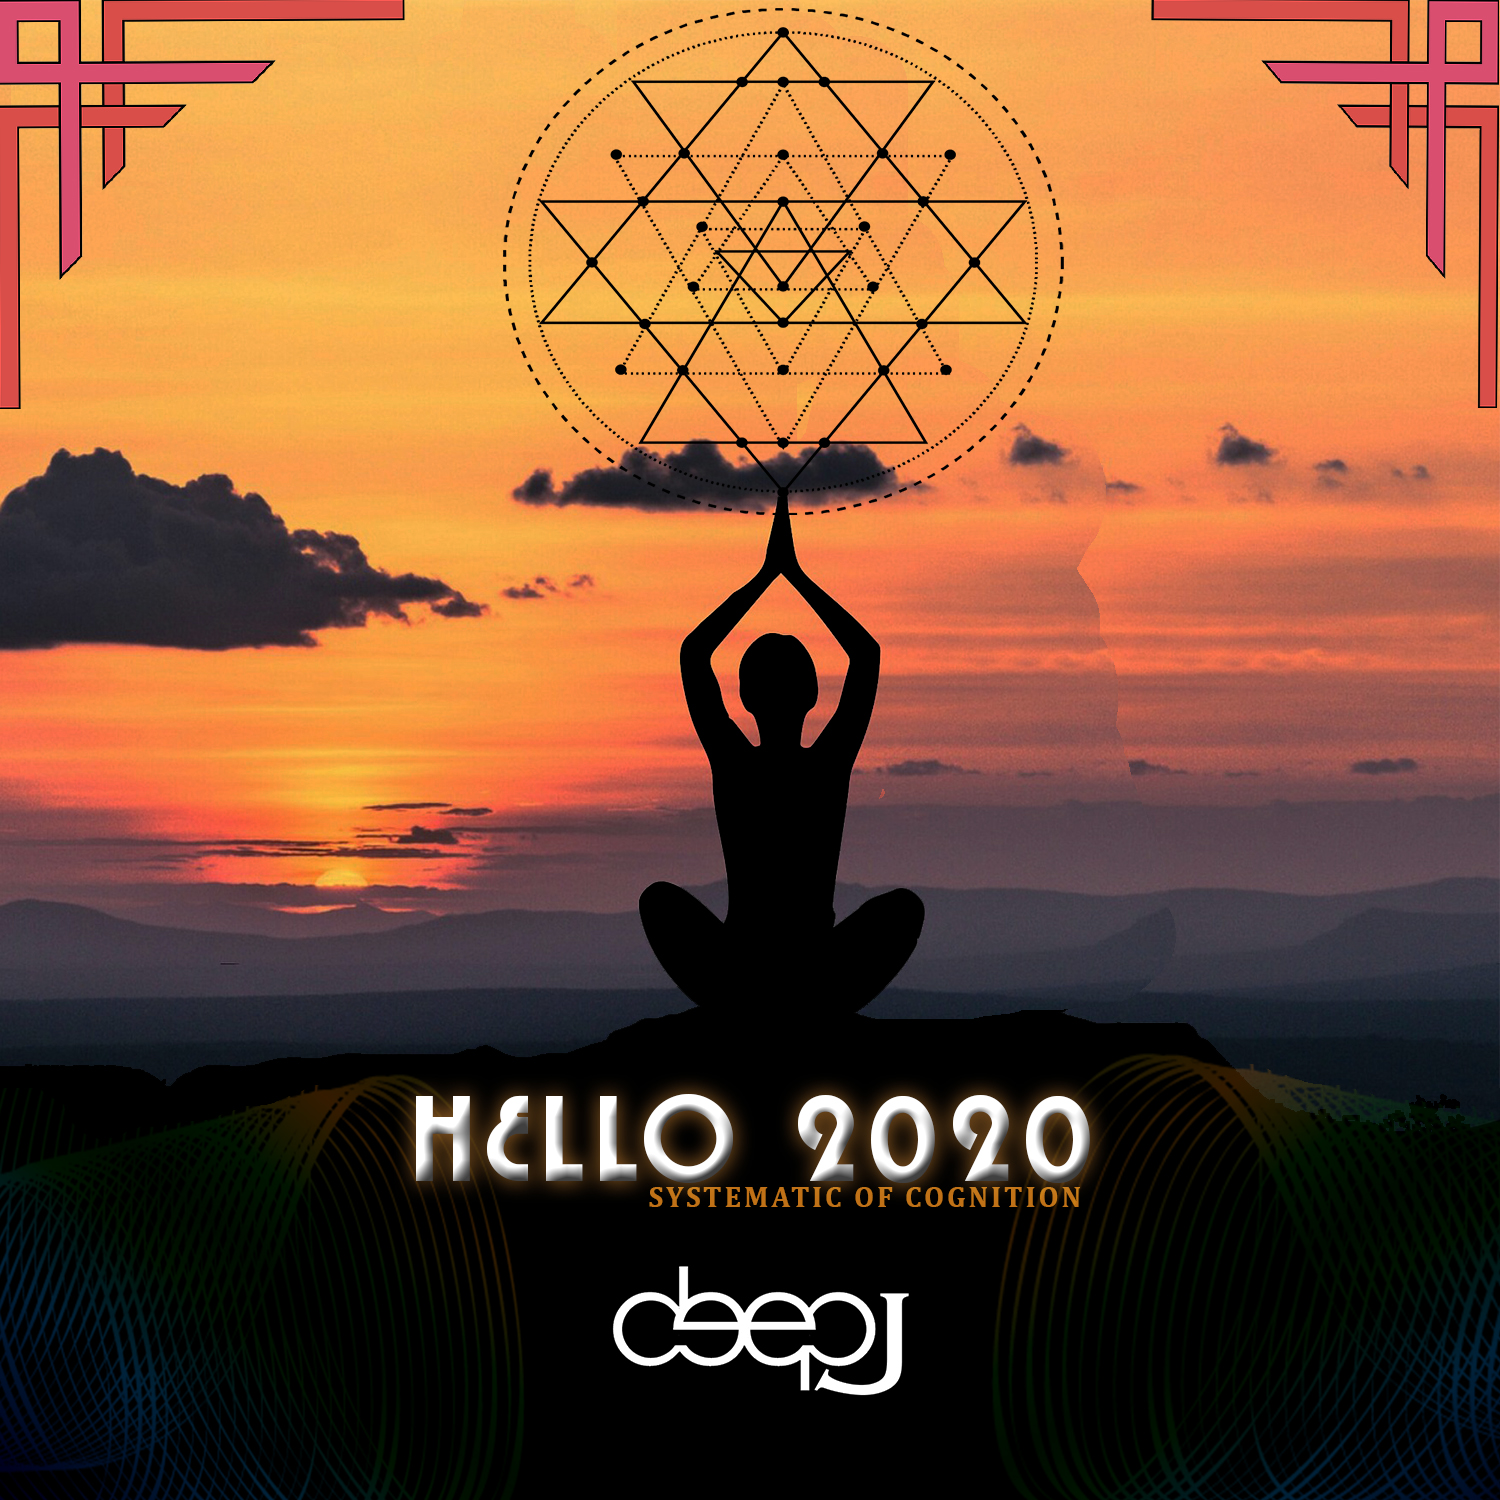 HELLO 2020 [ Episode 169 of Global Therapy ] (from January 6th)